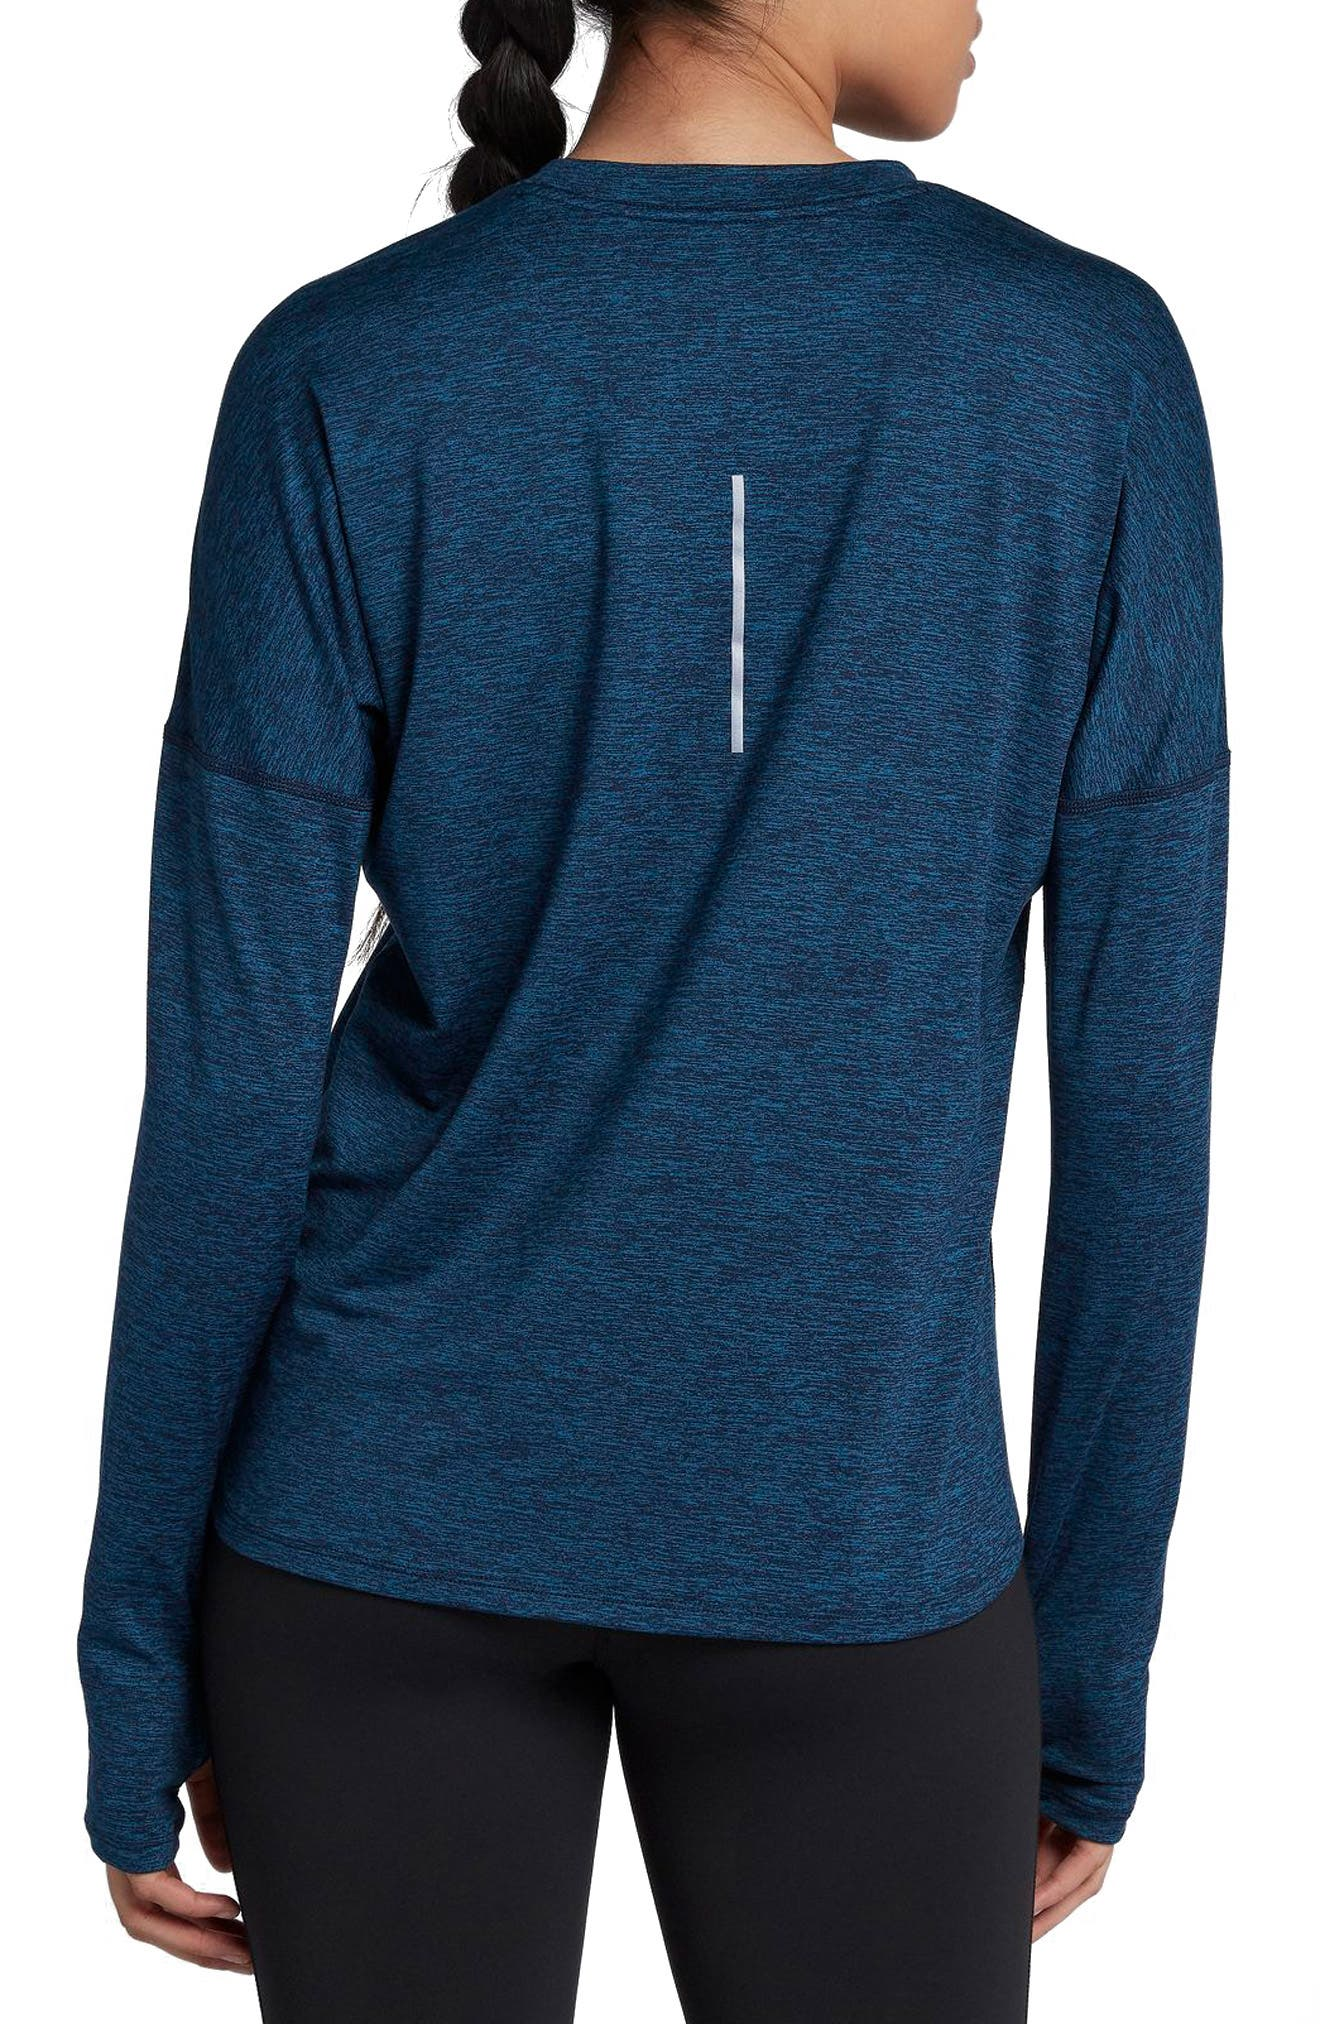 Dry Element Long Sleeve Top,                             Alternate thumbnail 2, color,                             Obsidian/ Blue Force/ Heather